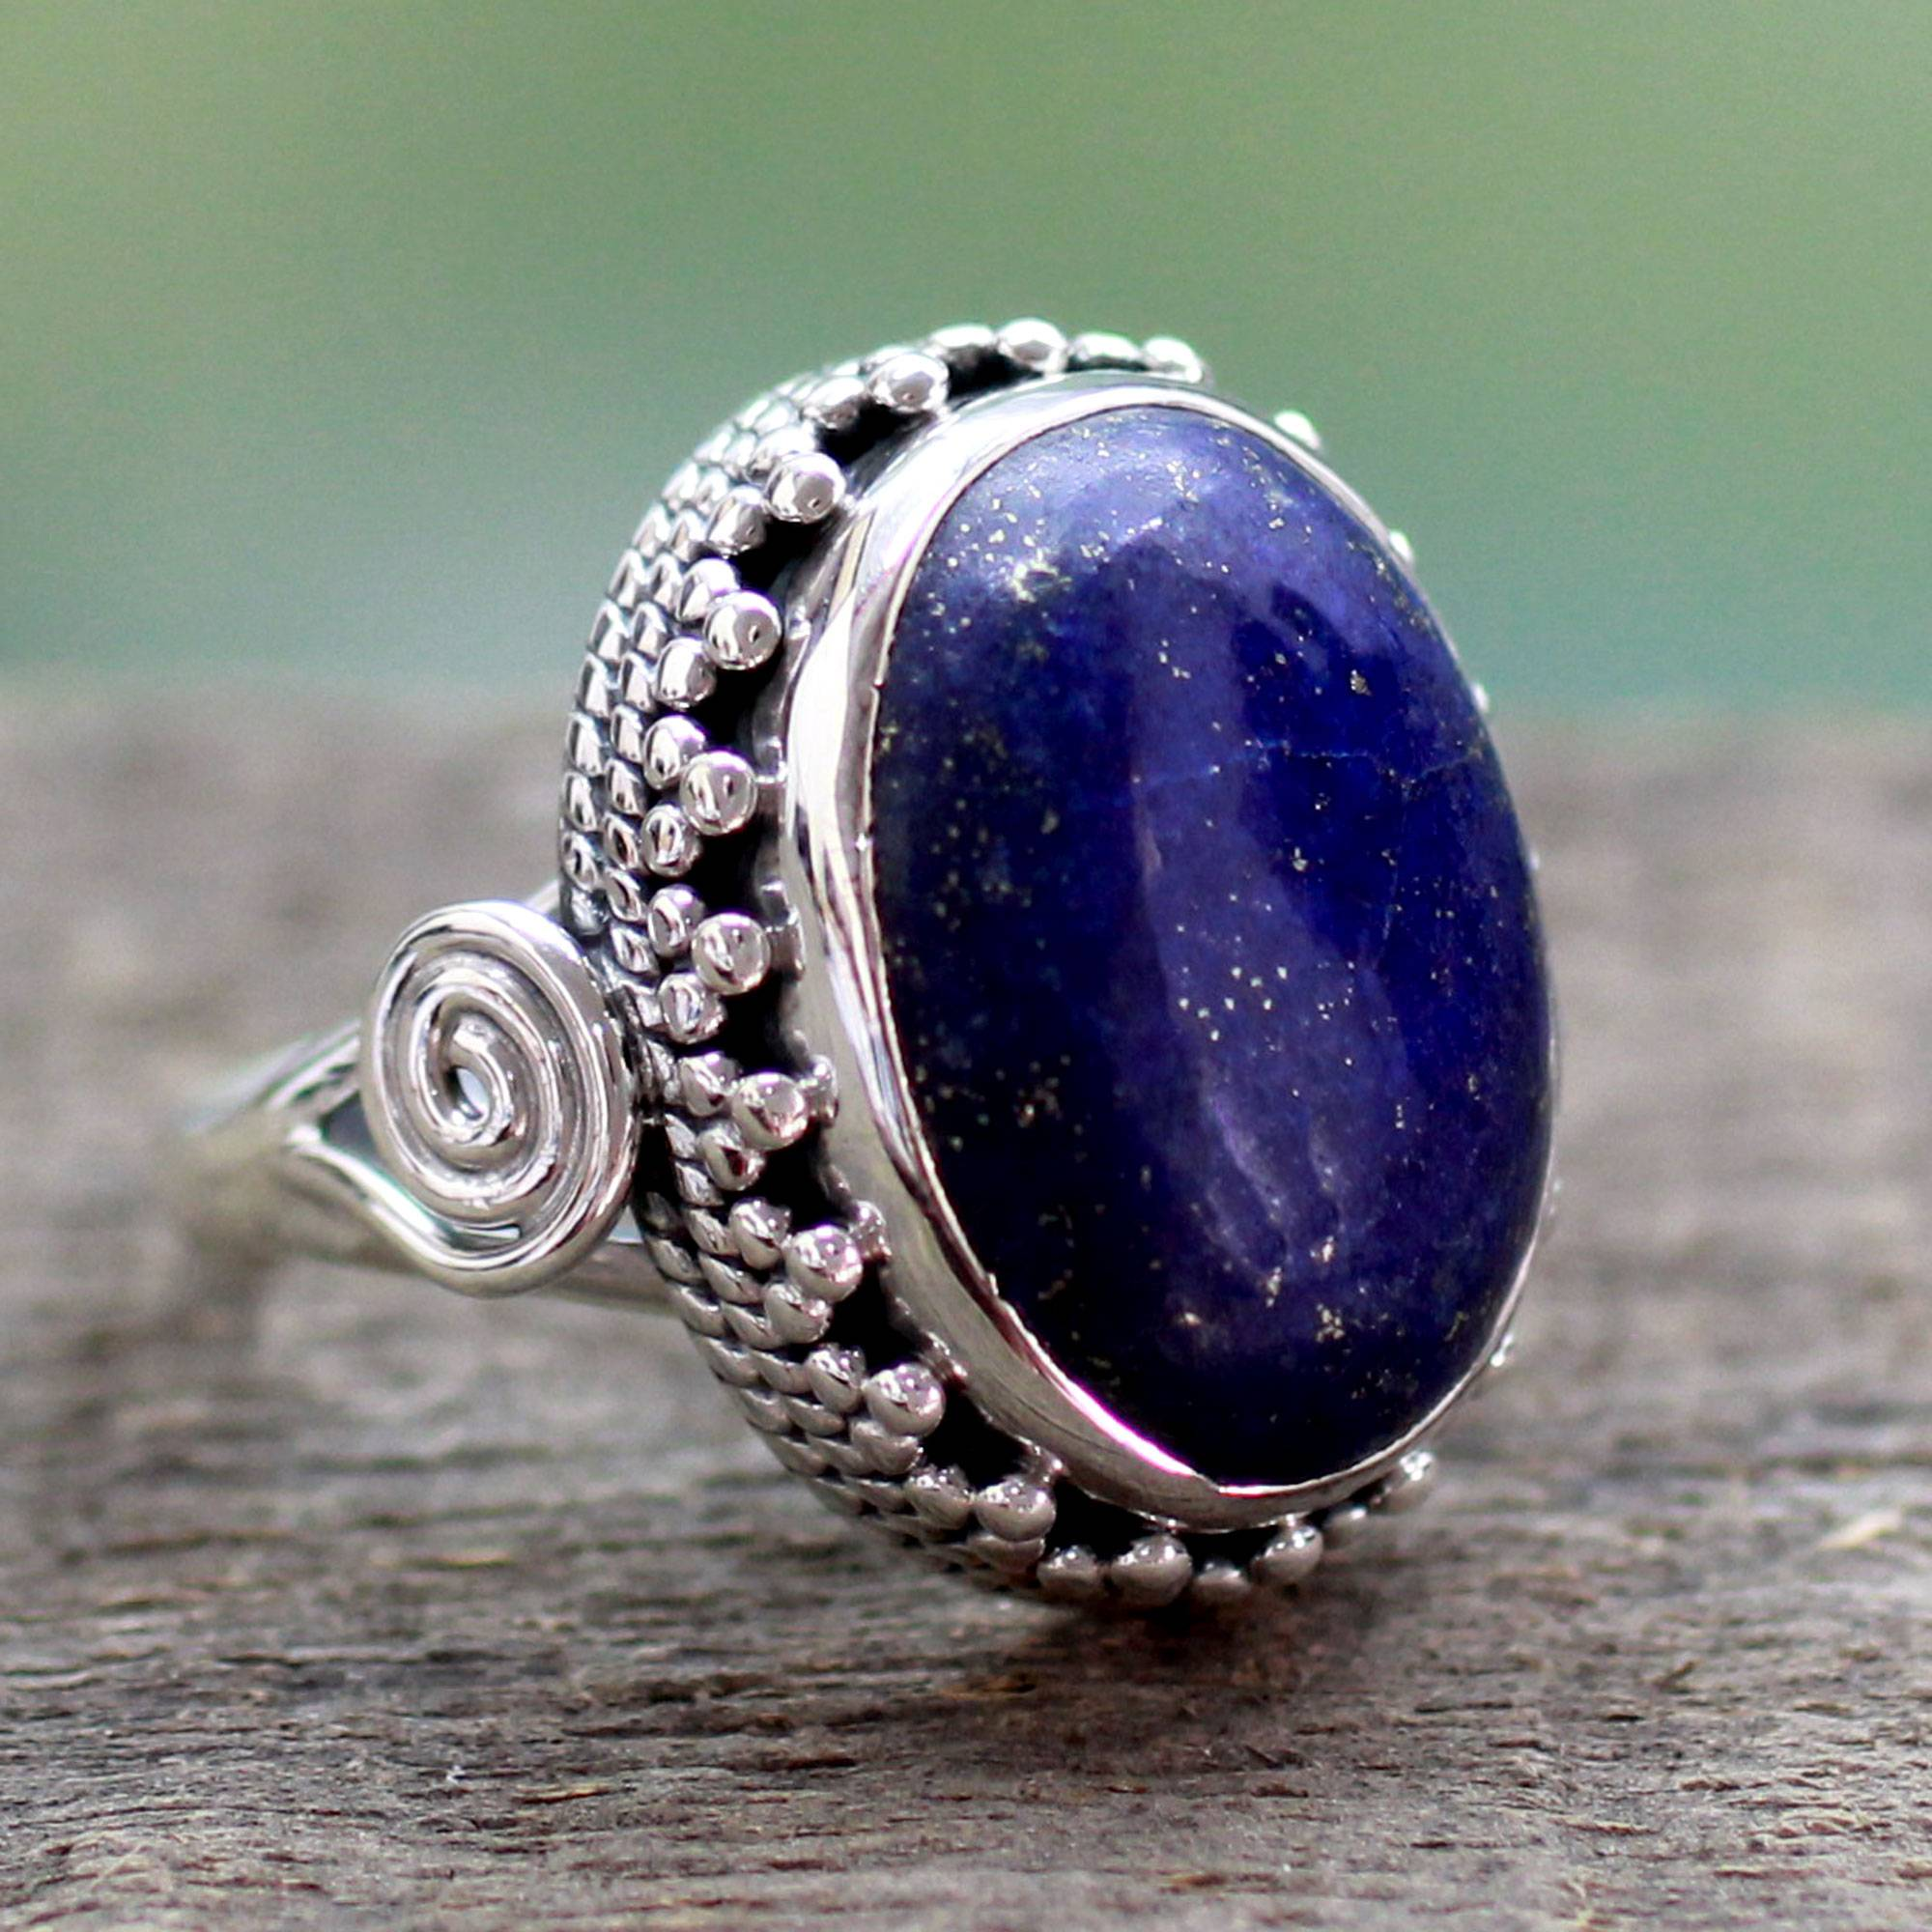 quartz handmade buy druzey ni ring the blue rings stones ornamental starry item royal livemaster